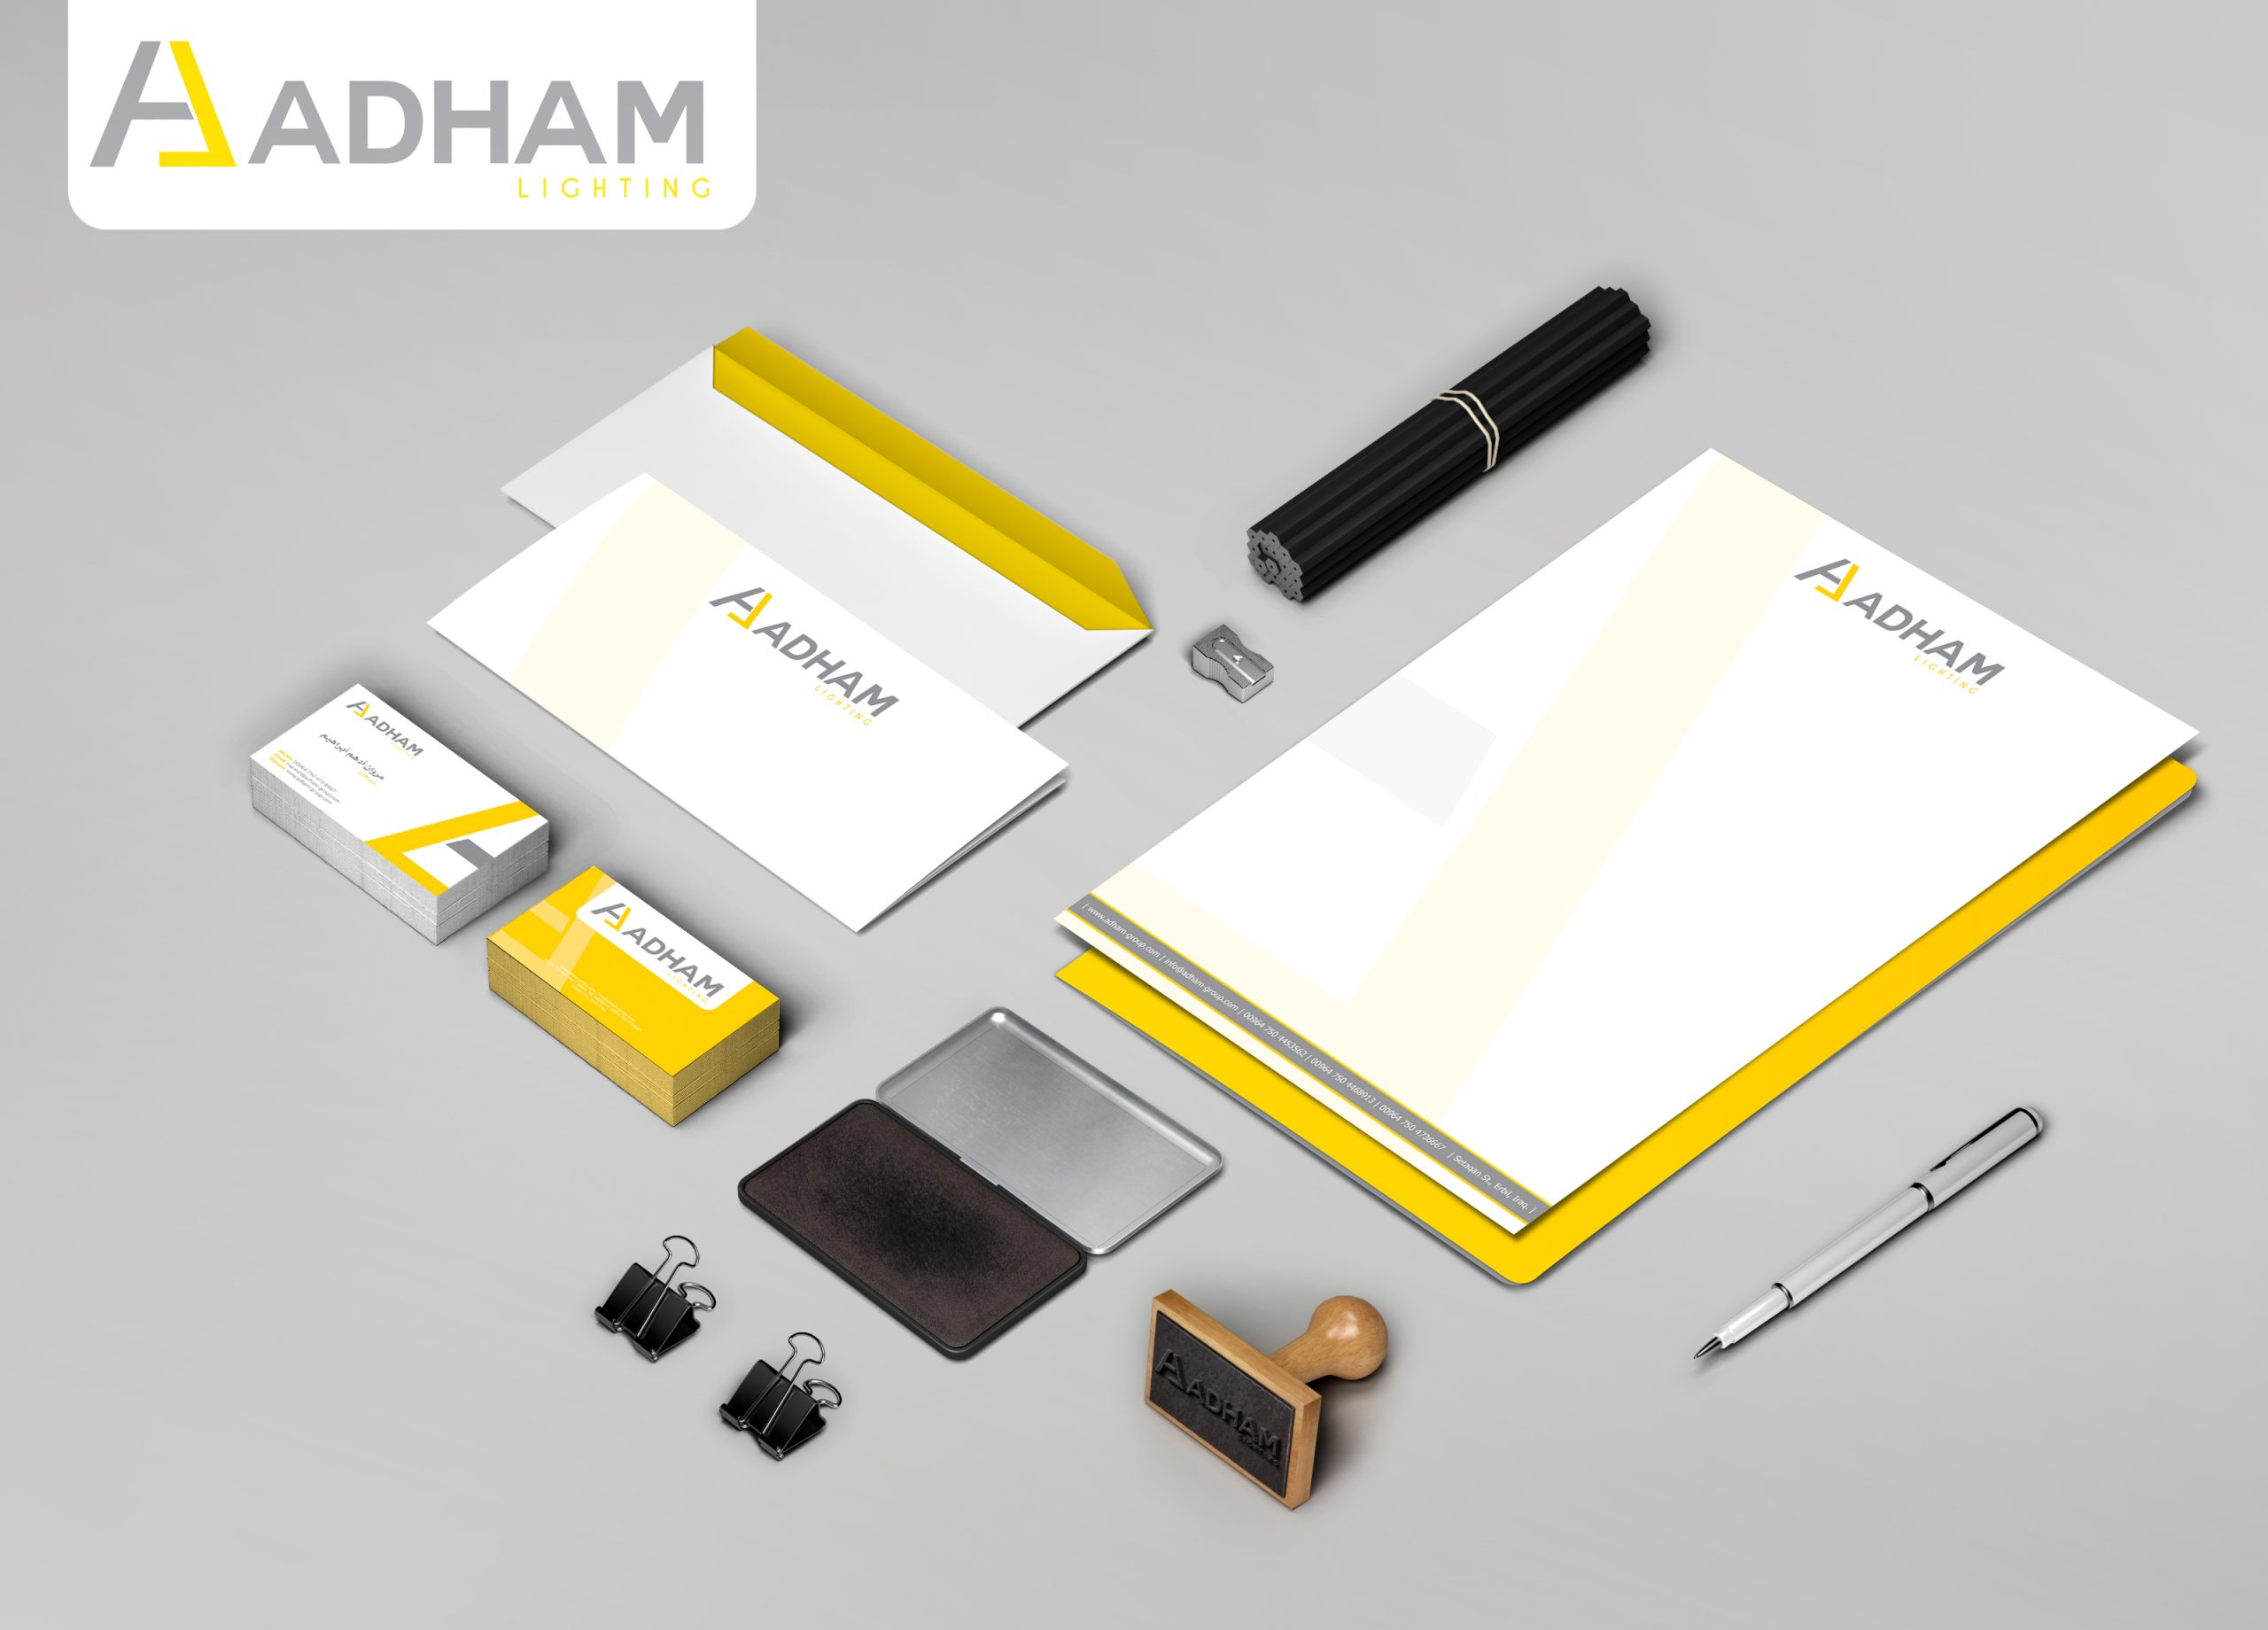 Adham Lighting Branding